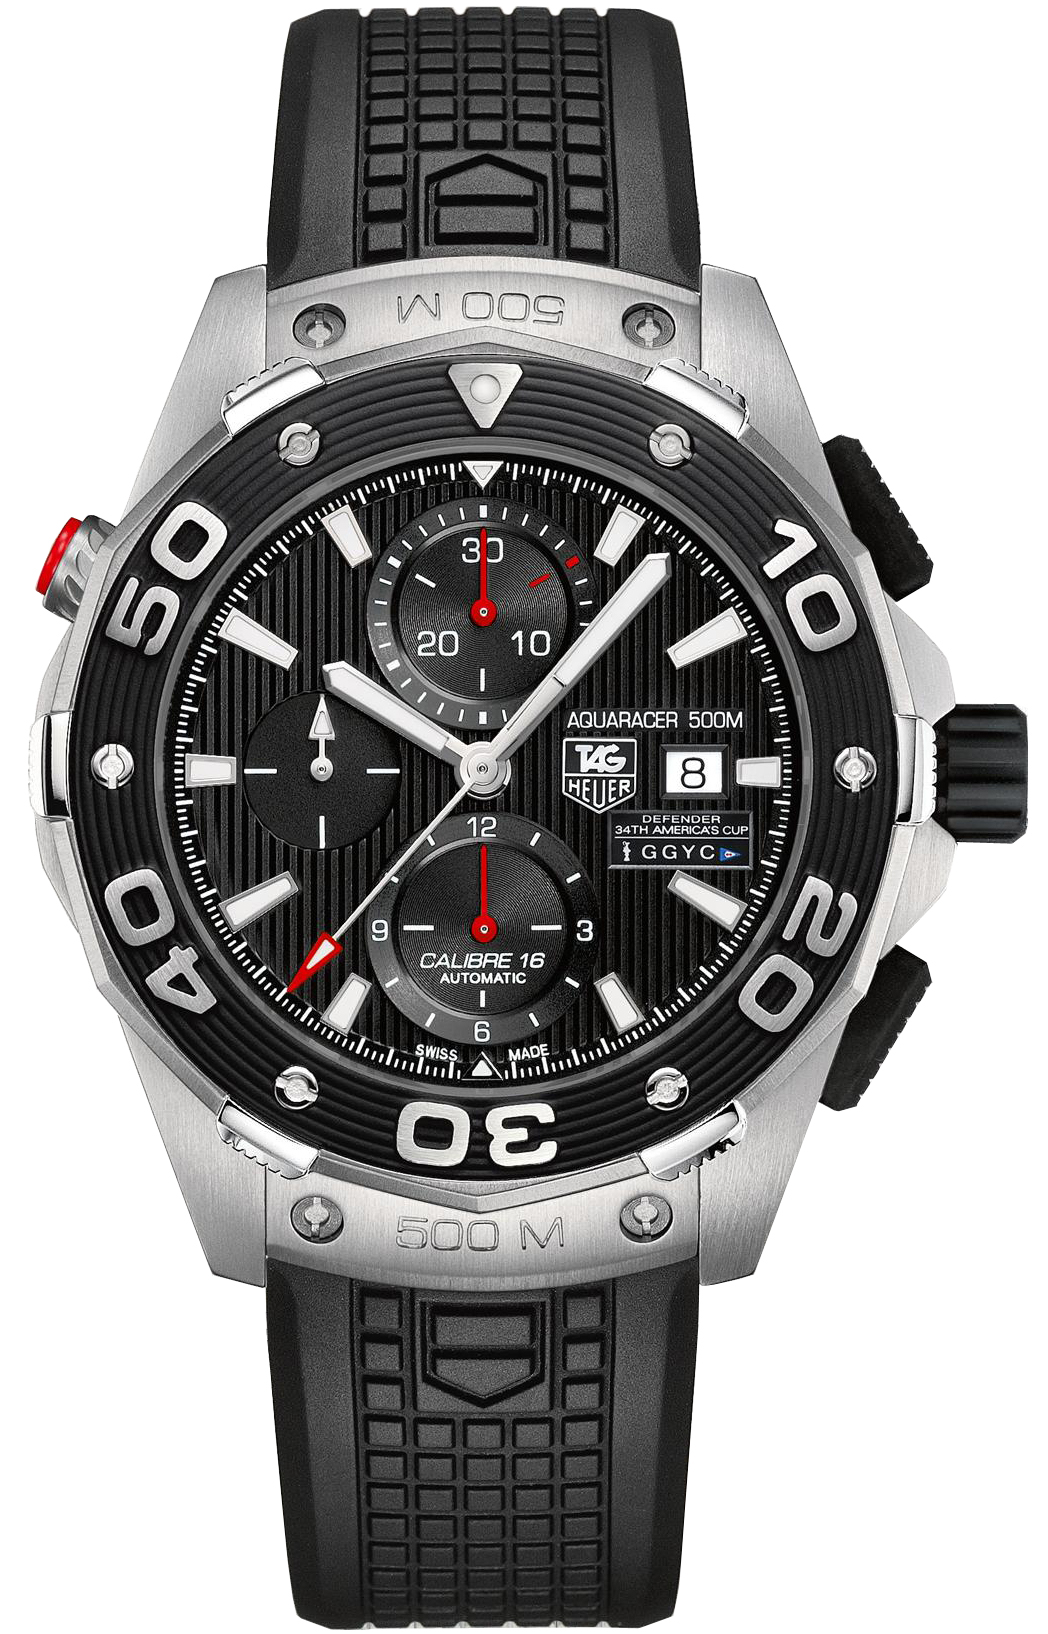 Limited Edition Birthday Collection: CAJ2112 FT6023 TAG Heuer Aquaracer Limited Edition GGYC